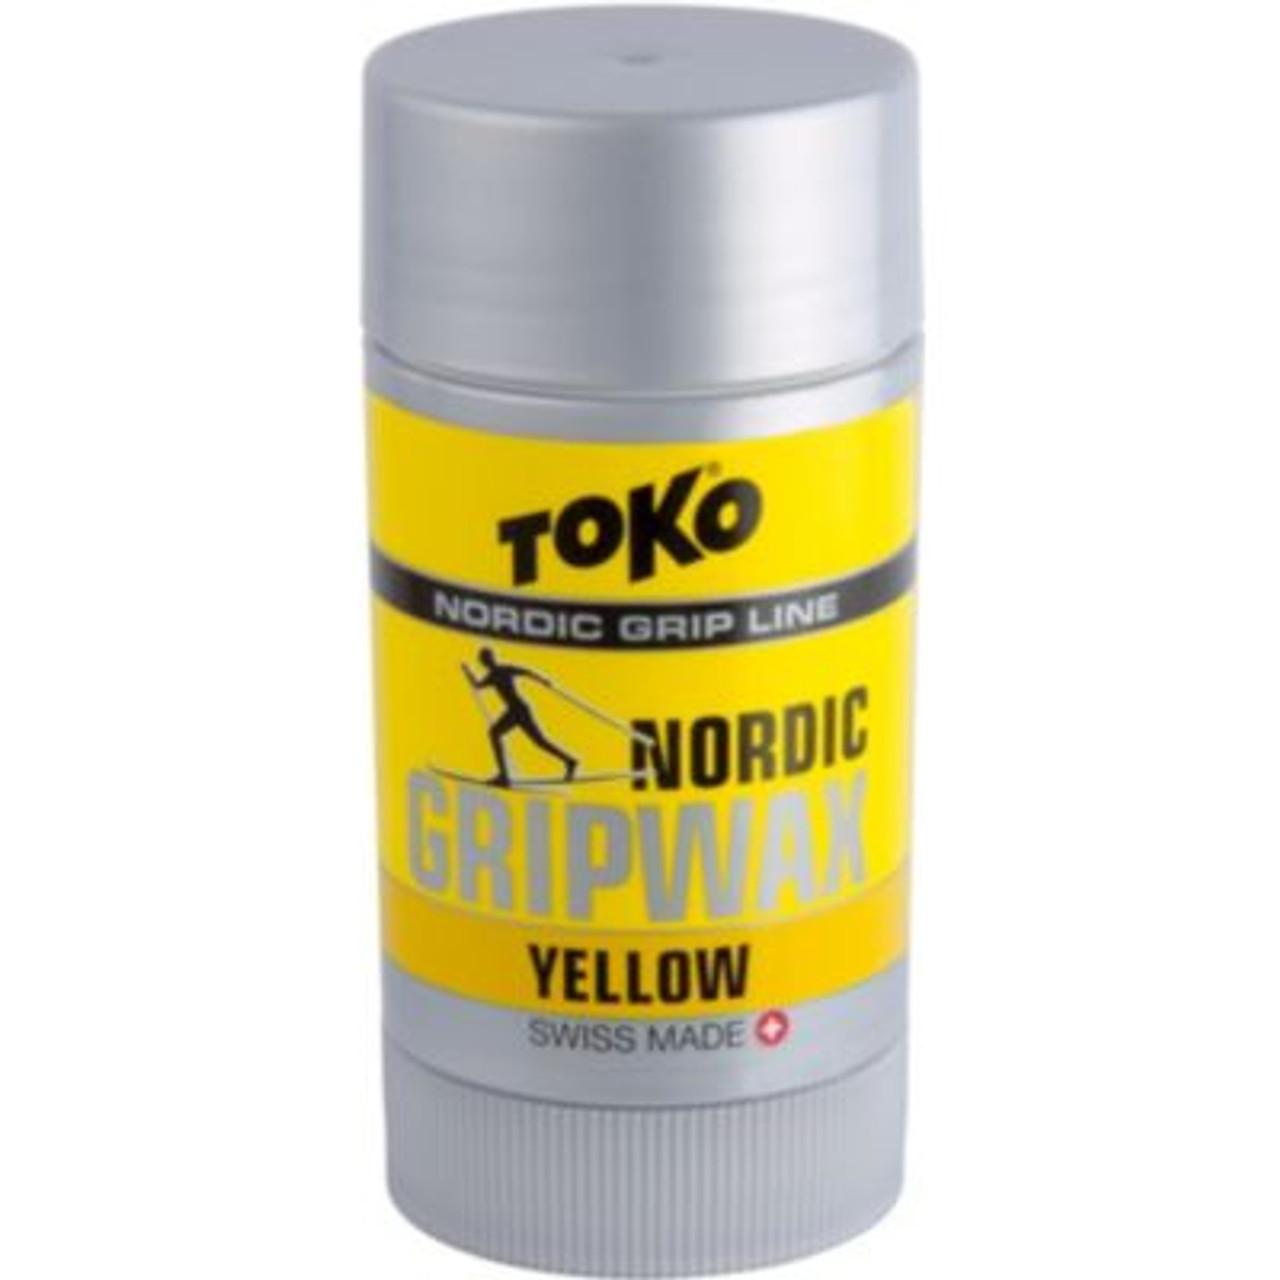 Toko Nordic Grip Wax Yellow - 27g